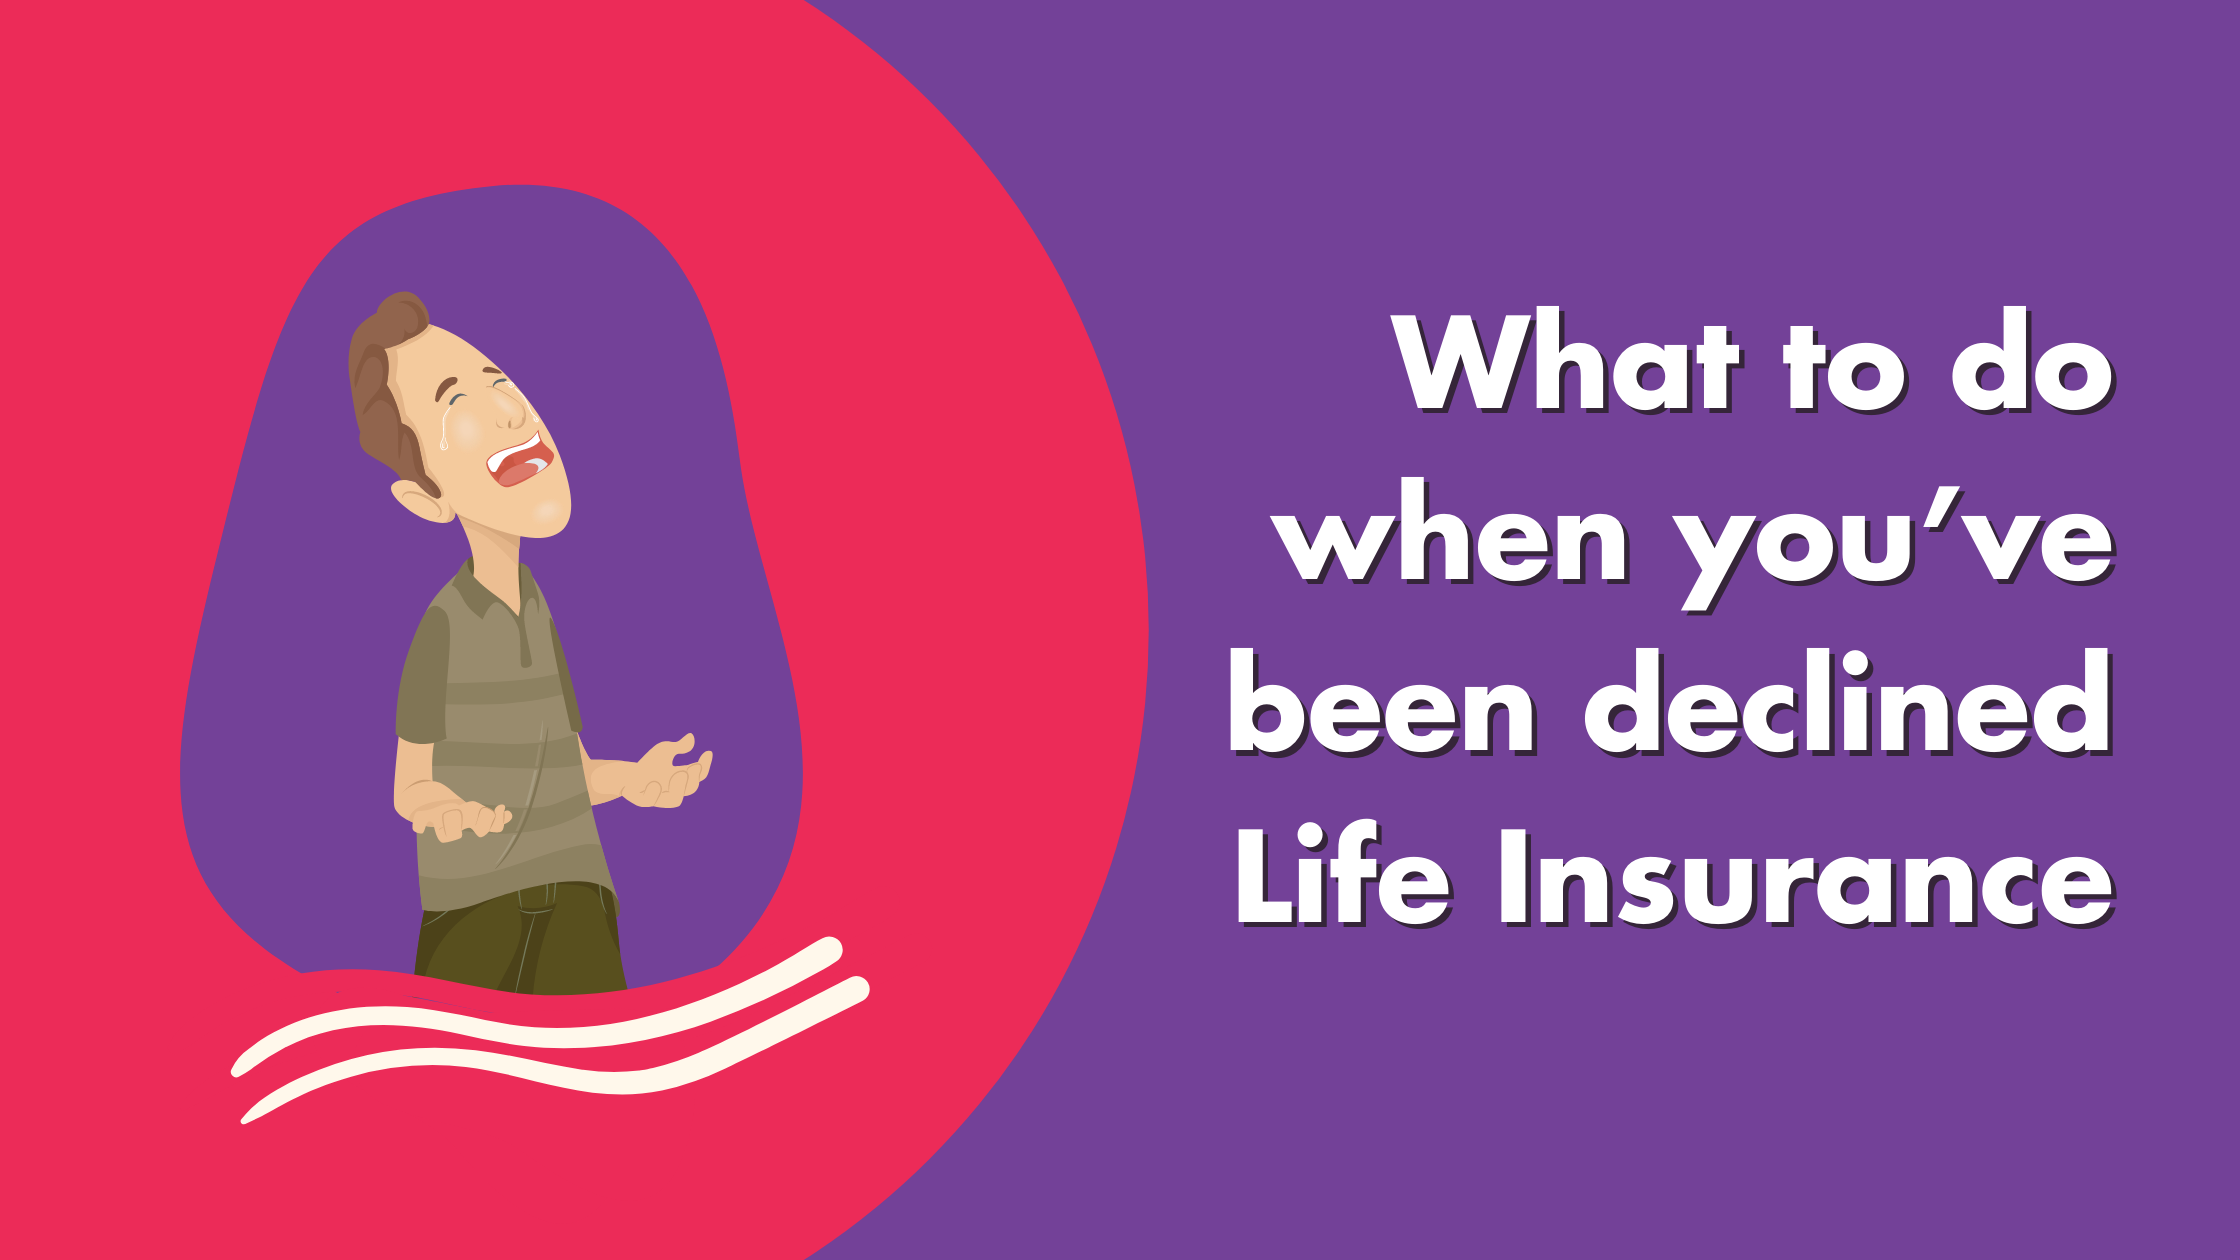 What To Do When You've Been Declined Life Insurance